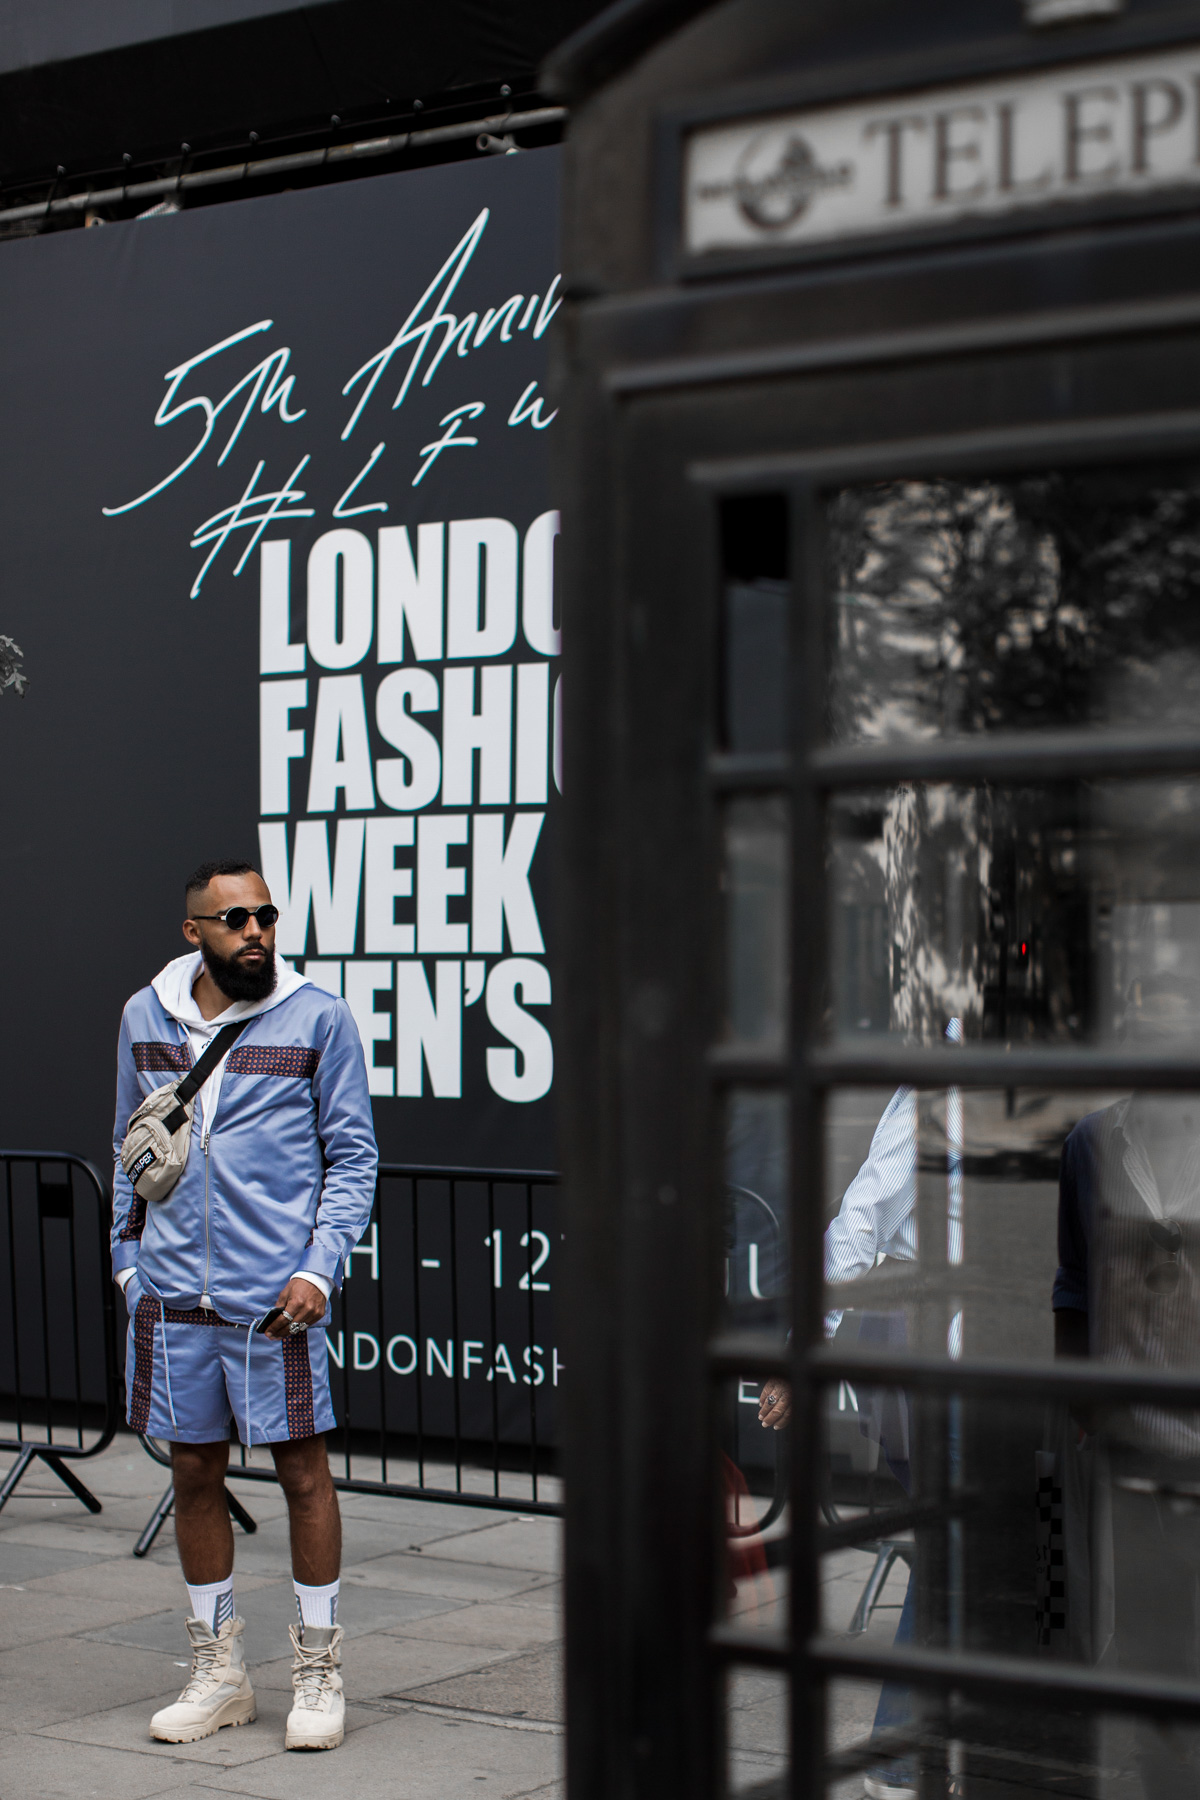 London Fashion Week Men's Street Style with New Kiss on the Blog